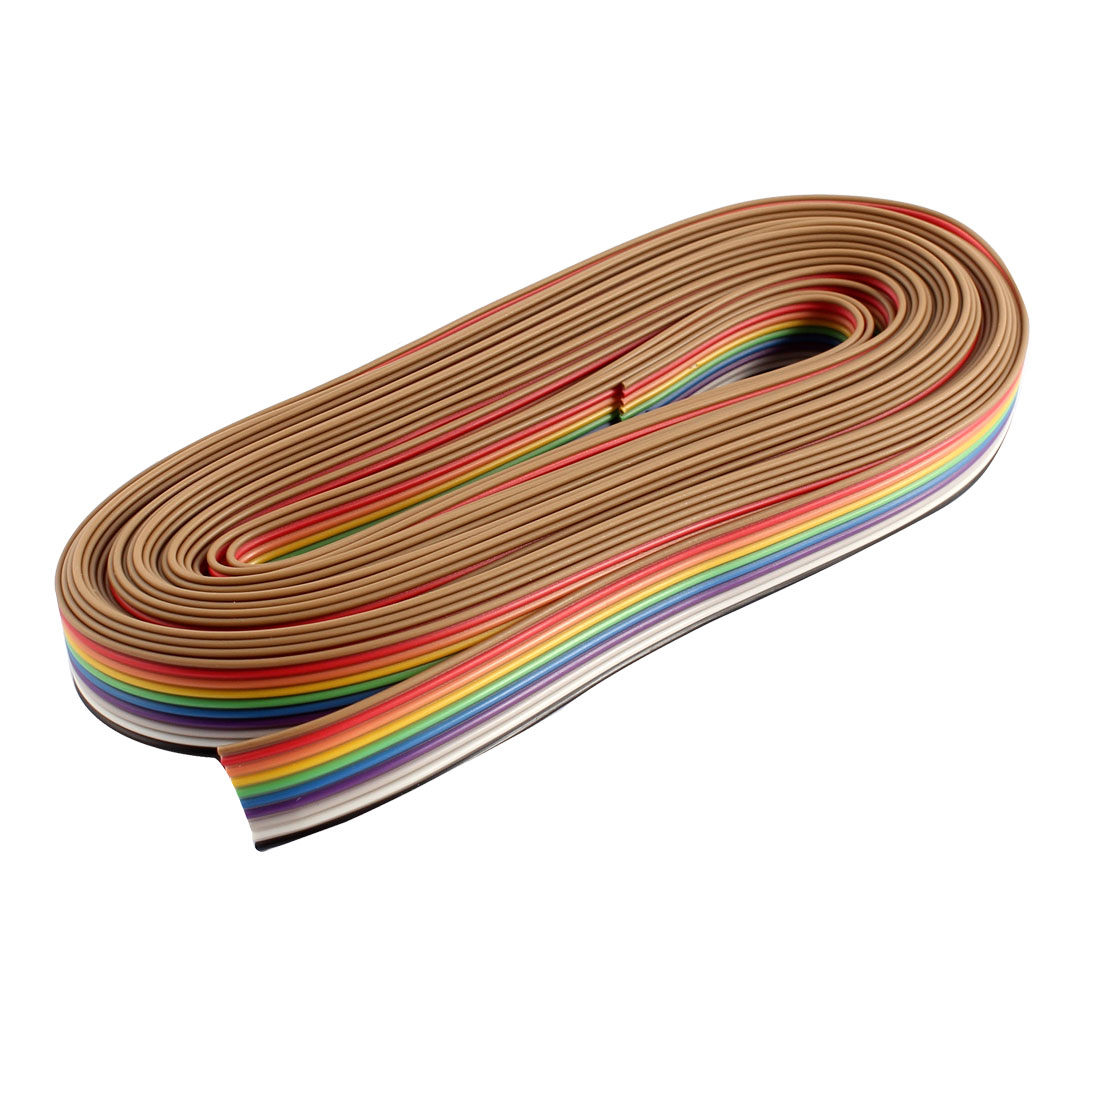 Uxcell 20ft 6m Long 10 Way 10 Pin Rainbow Color Flat